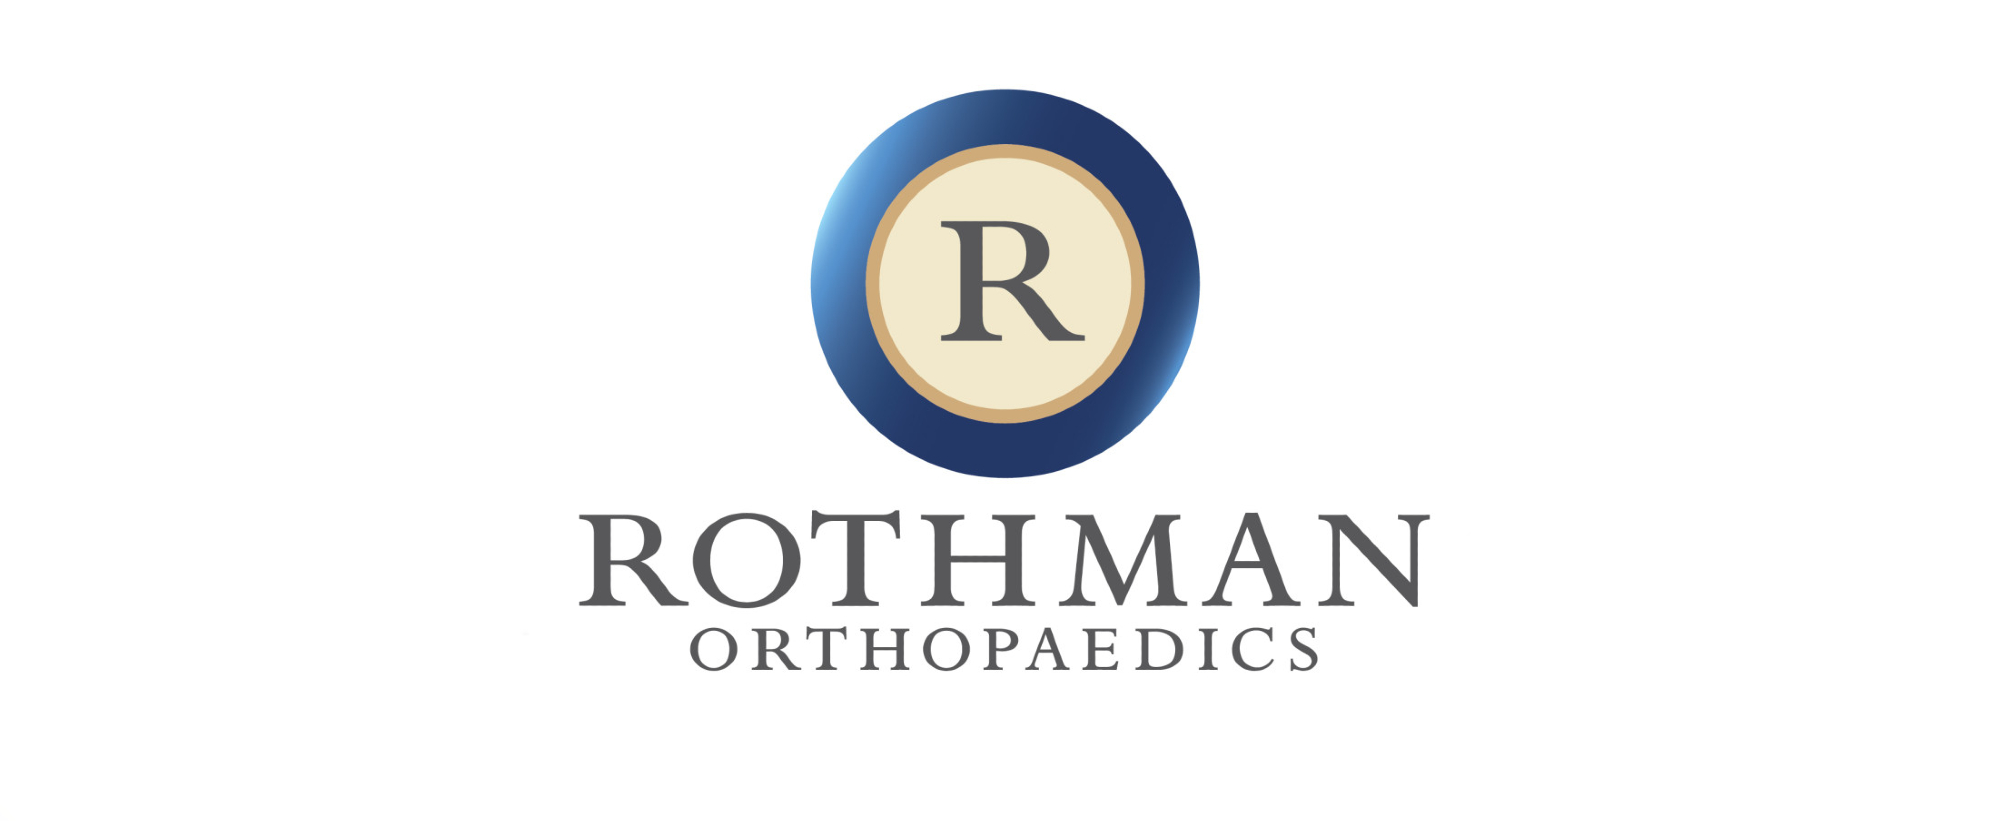 Rothman case study: How the leader in orthopaedics puts employees first